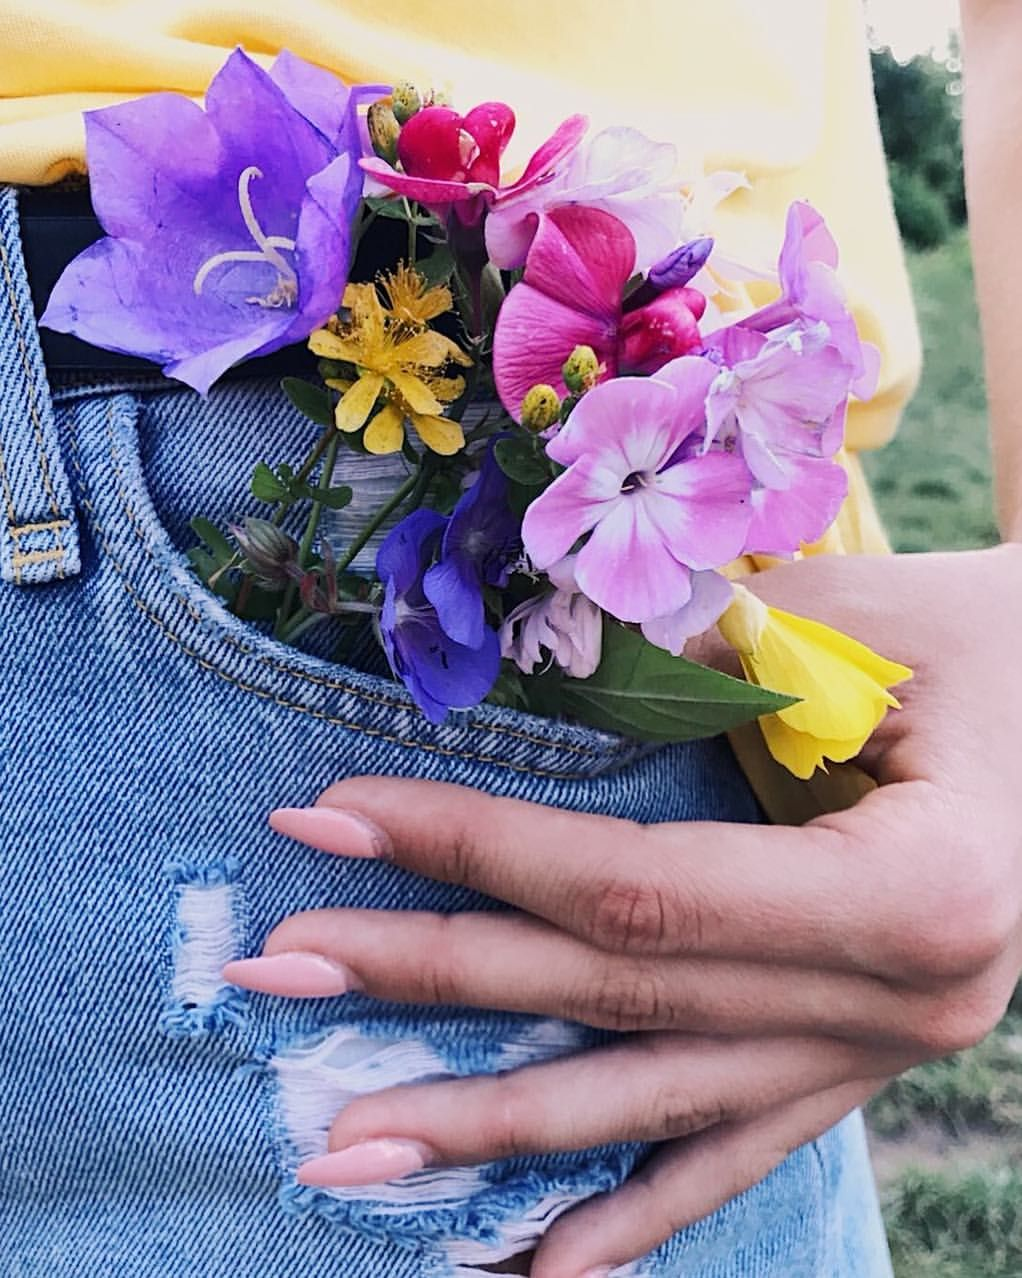 It's your time to bloom🌸🌼🌺 #flowers#hand#nails#pink#yellow#purple#instaphoto#instapic#instagood#beautifu#summer#kwiatki#🌸#vacation#nature